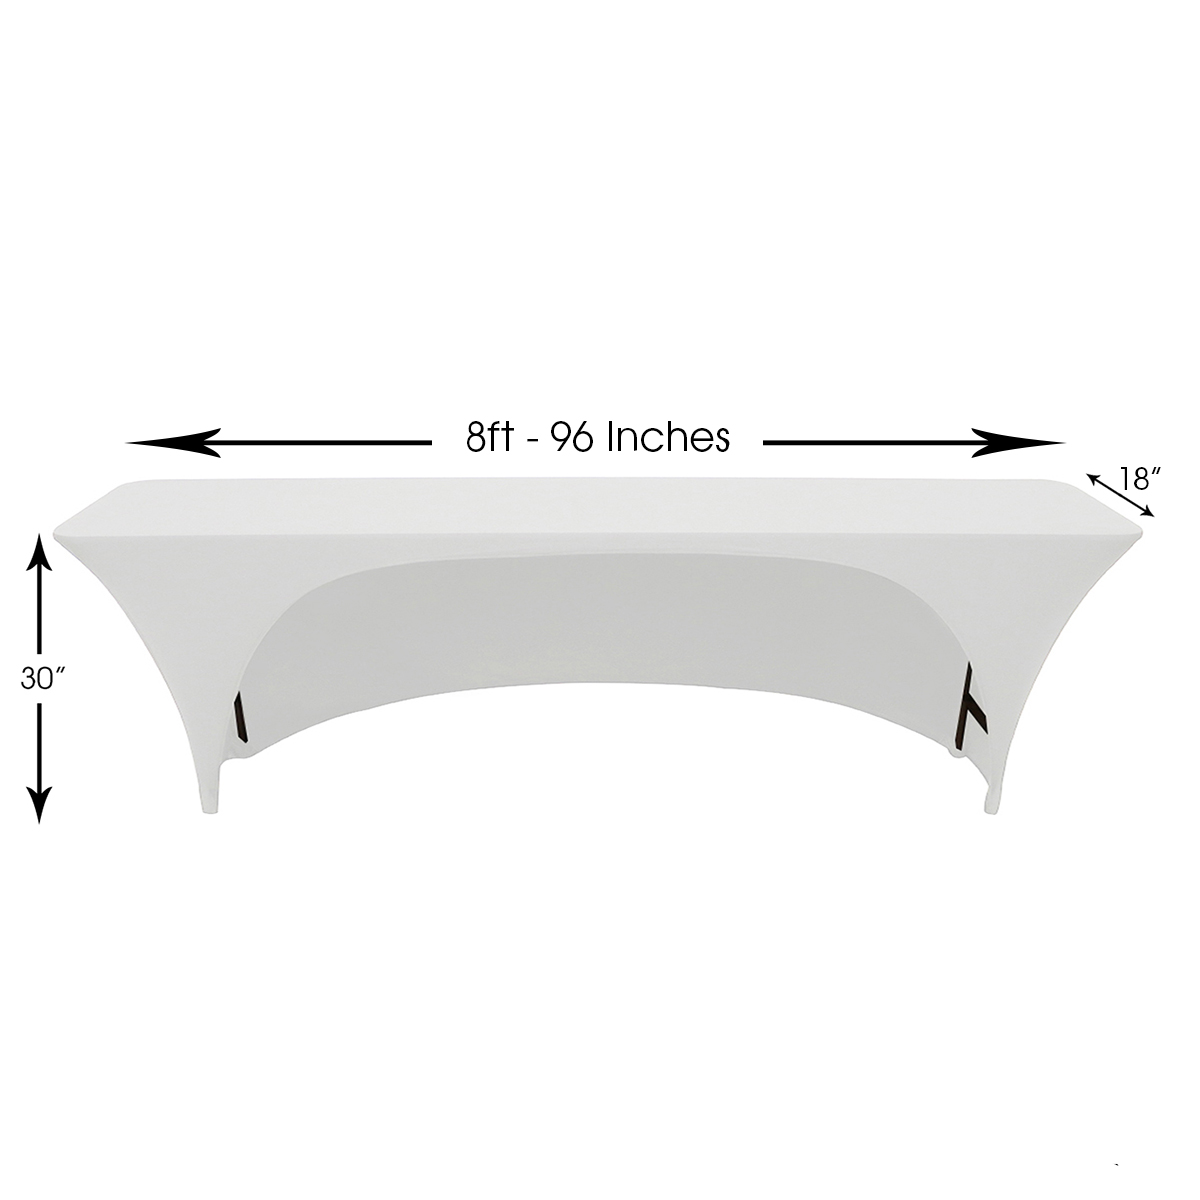 stretch-spandex-8ft-18-inches-open-back-rectangular-table-covers-white-dimensions.jpg